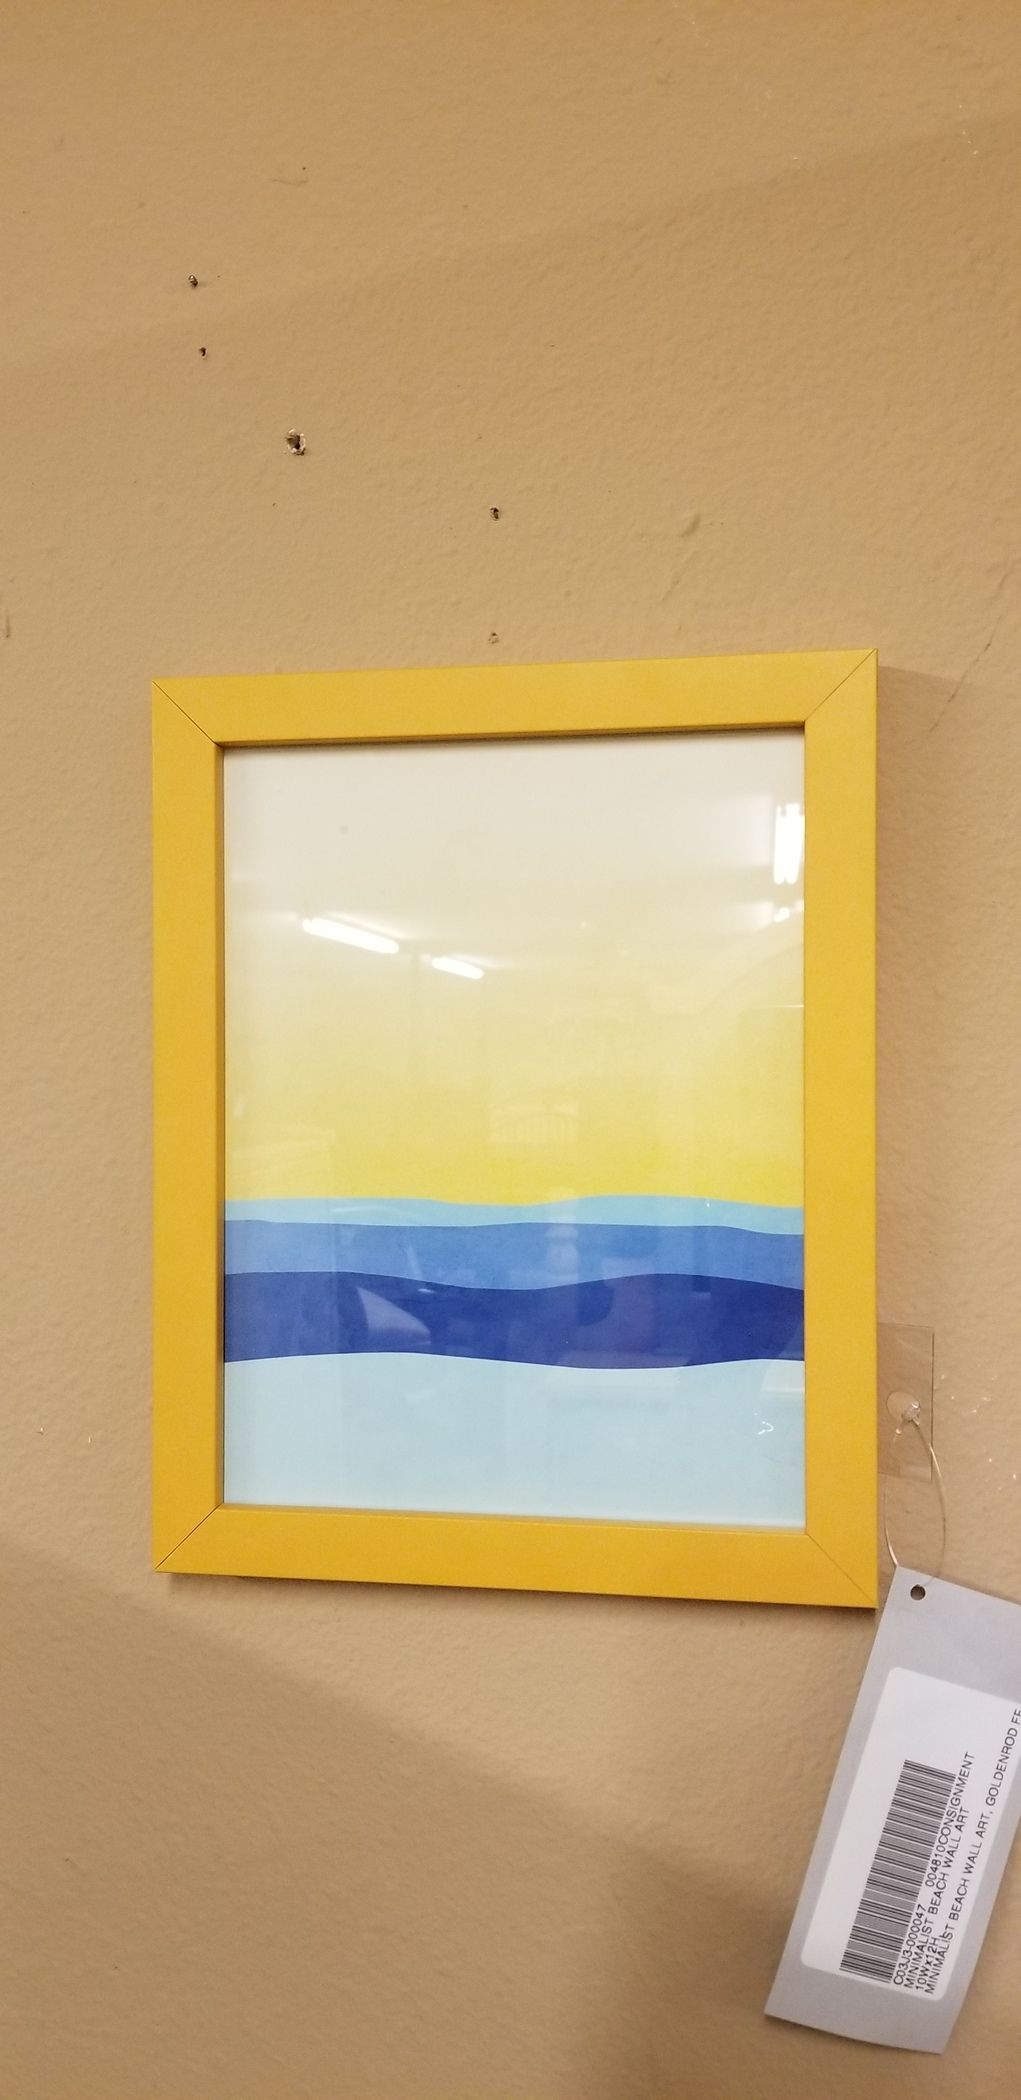 MINIMALIST BEACH WALL ART | Delmarva Furniture Consignment